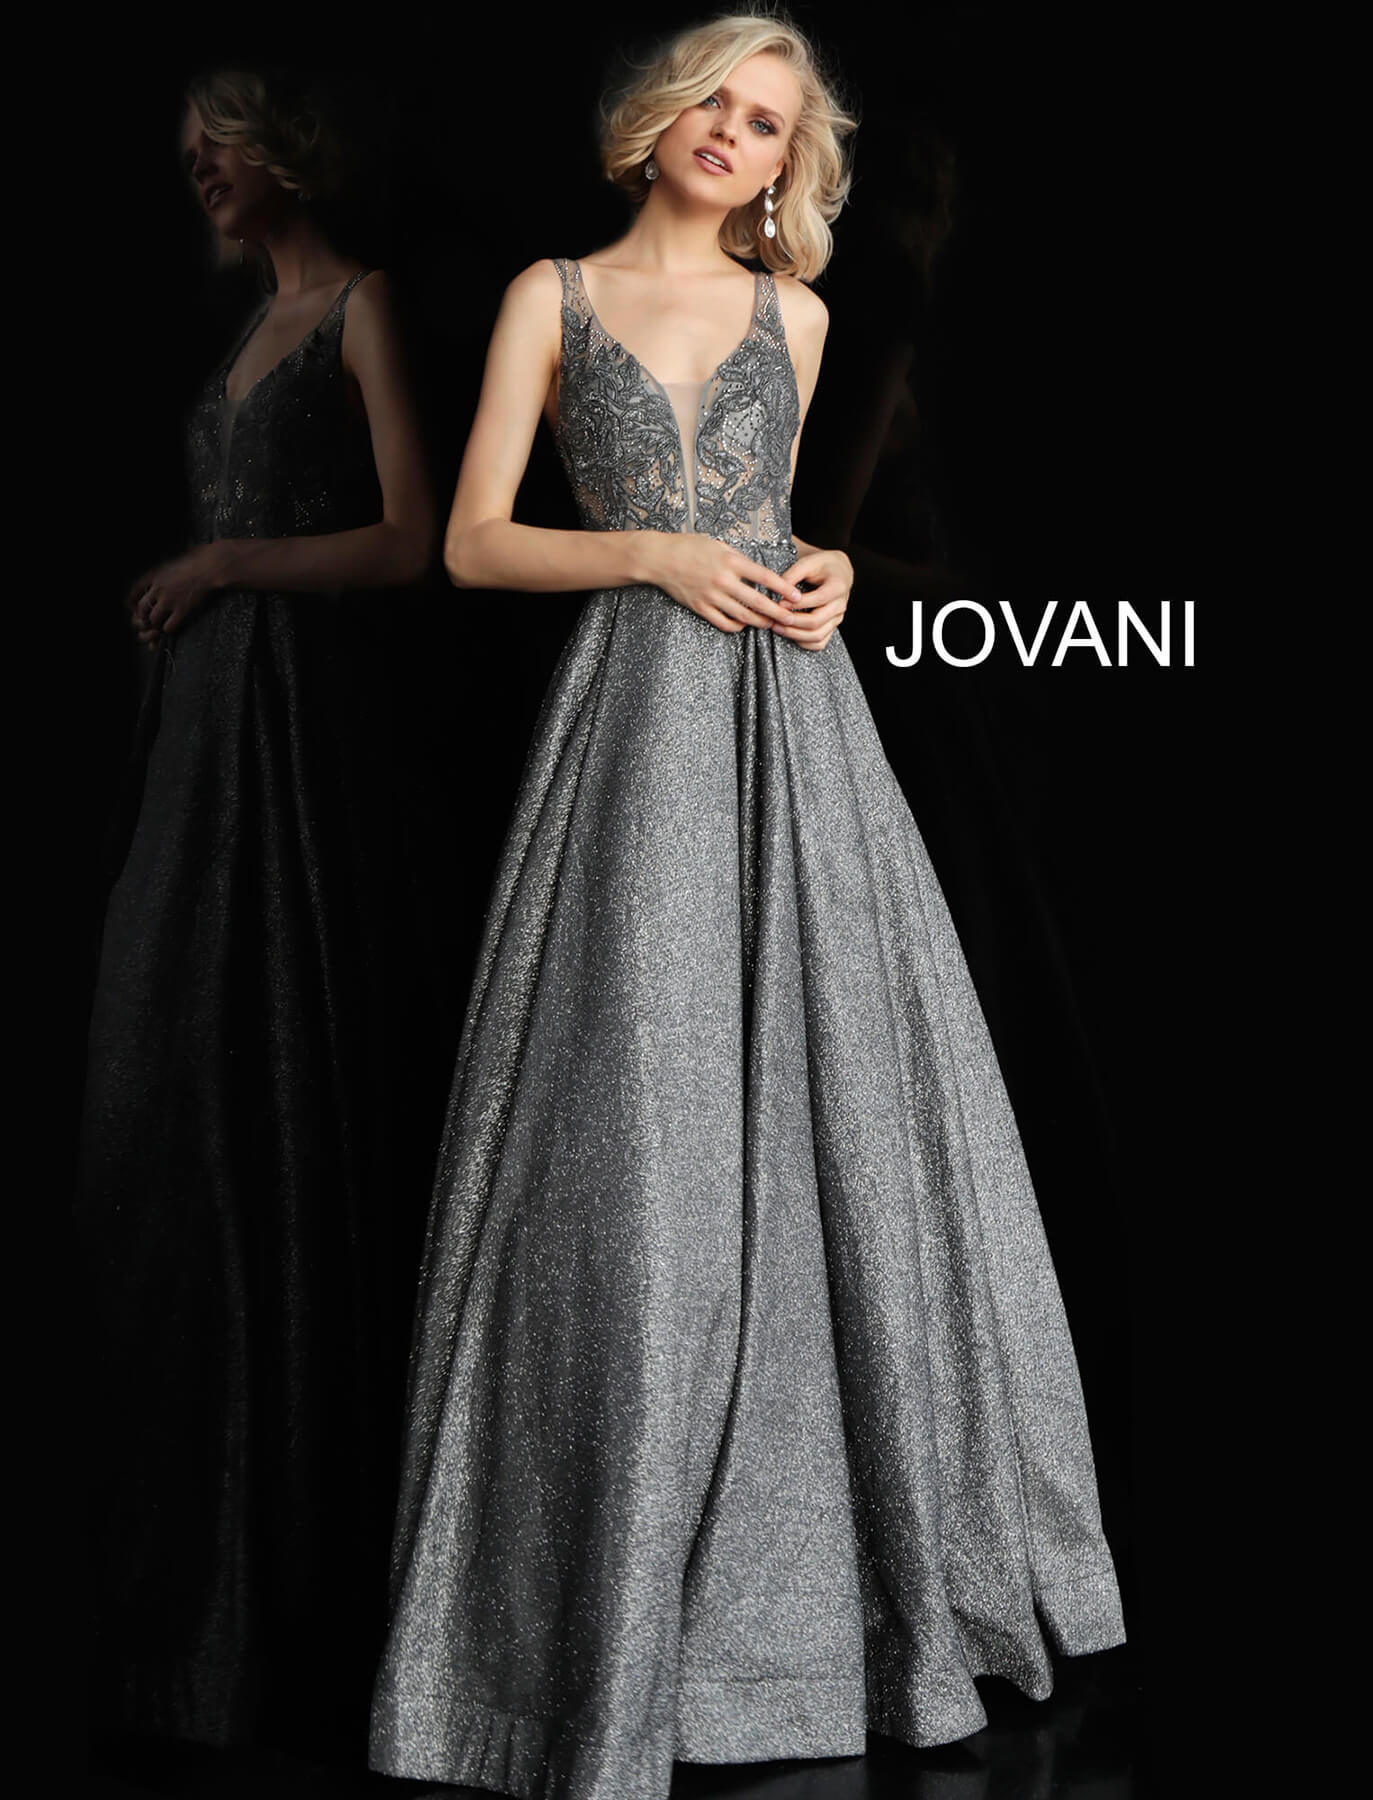 jovani Dark Grey Embellished Bodice Open Back Jovani Gown 65855